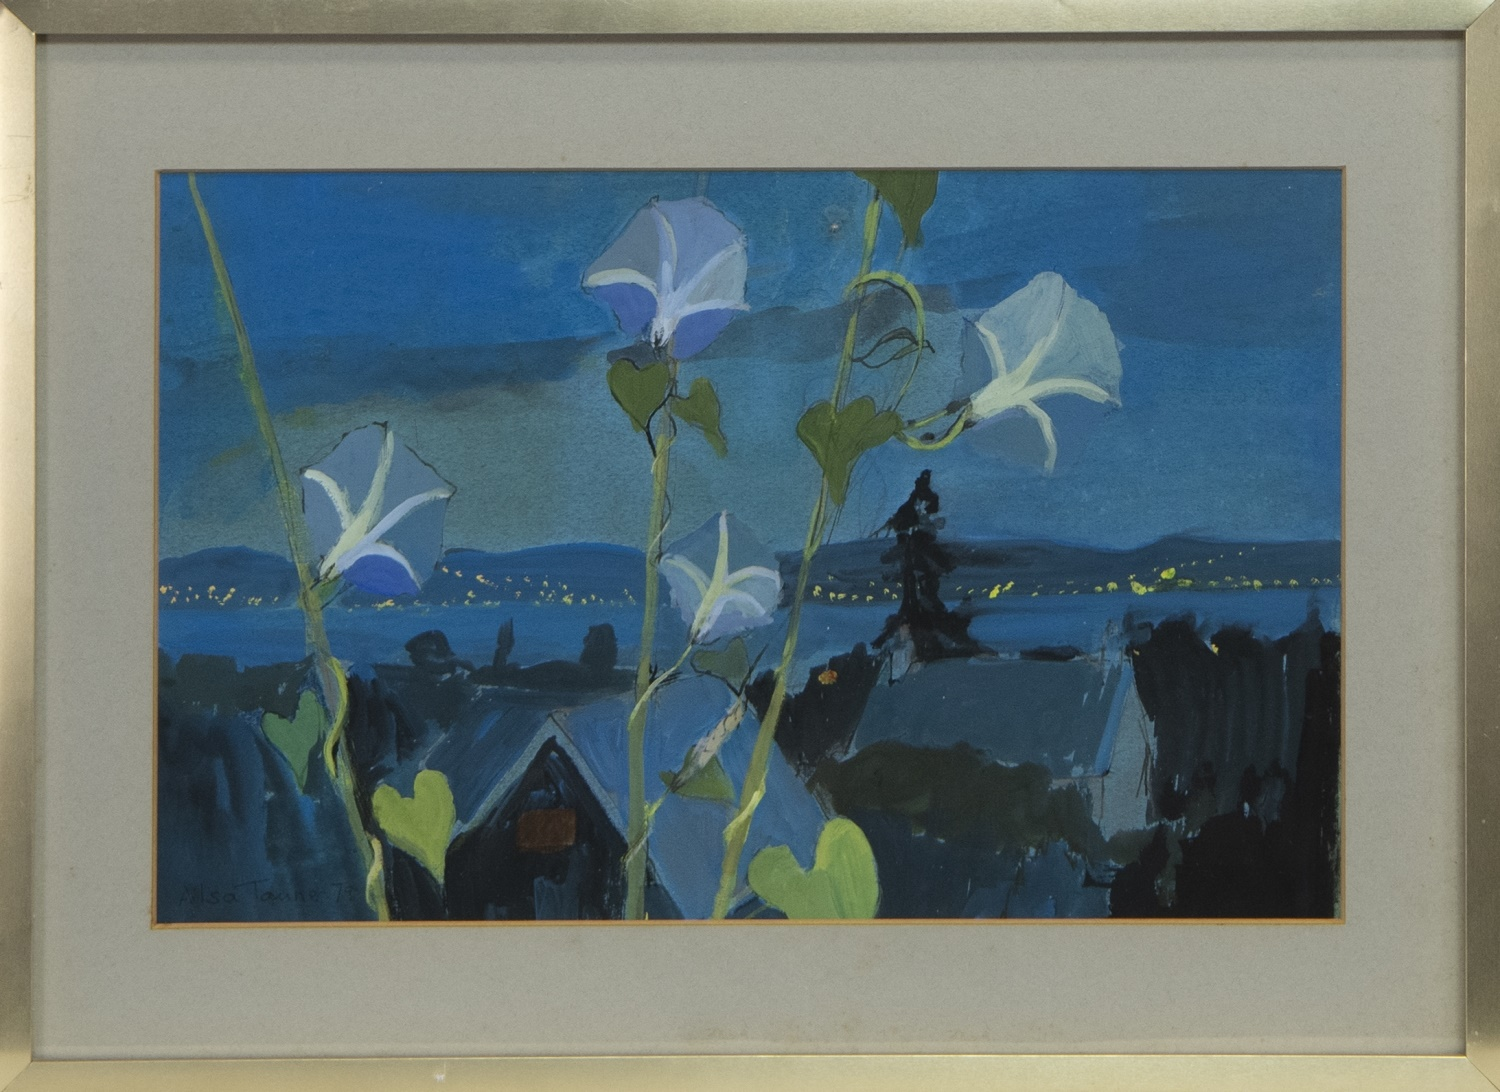 SUMER TWILIGHT, HELENSBURGH, AN OIL BY ALISA TANNER